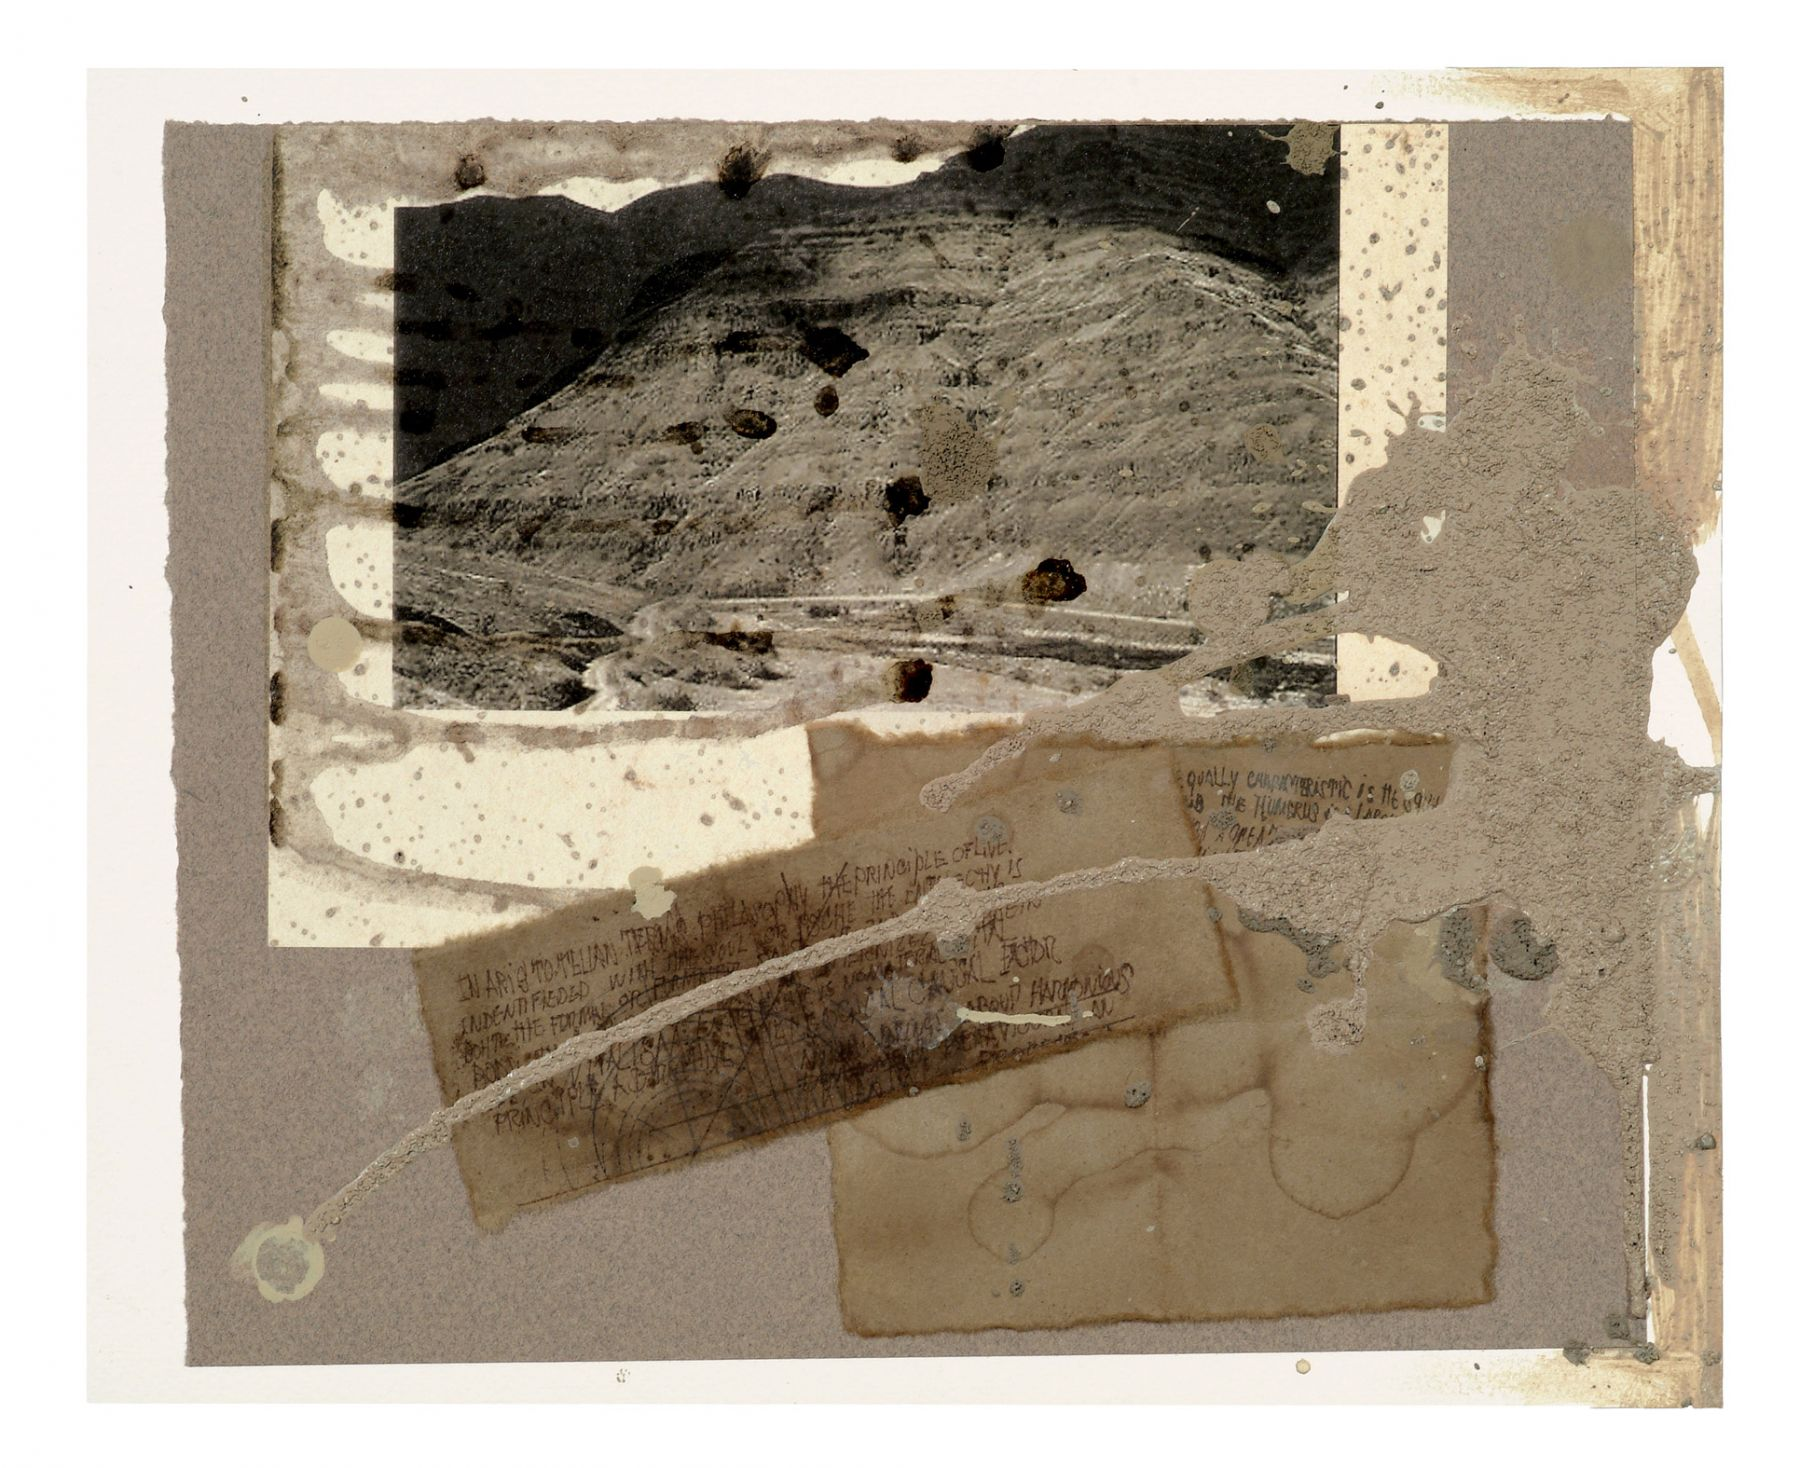 Untitled, 2002–03 Cardboard, print, rice paper, oil, sand, acrylic, and ink on cardboard